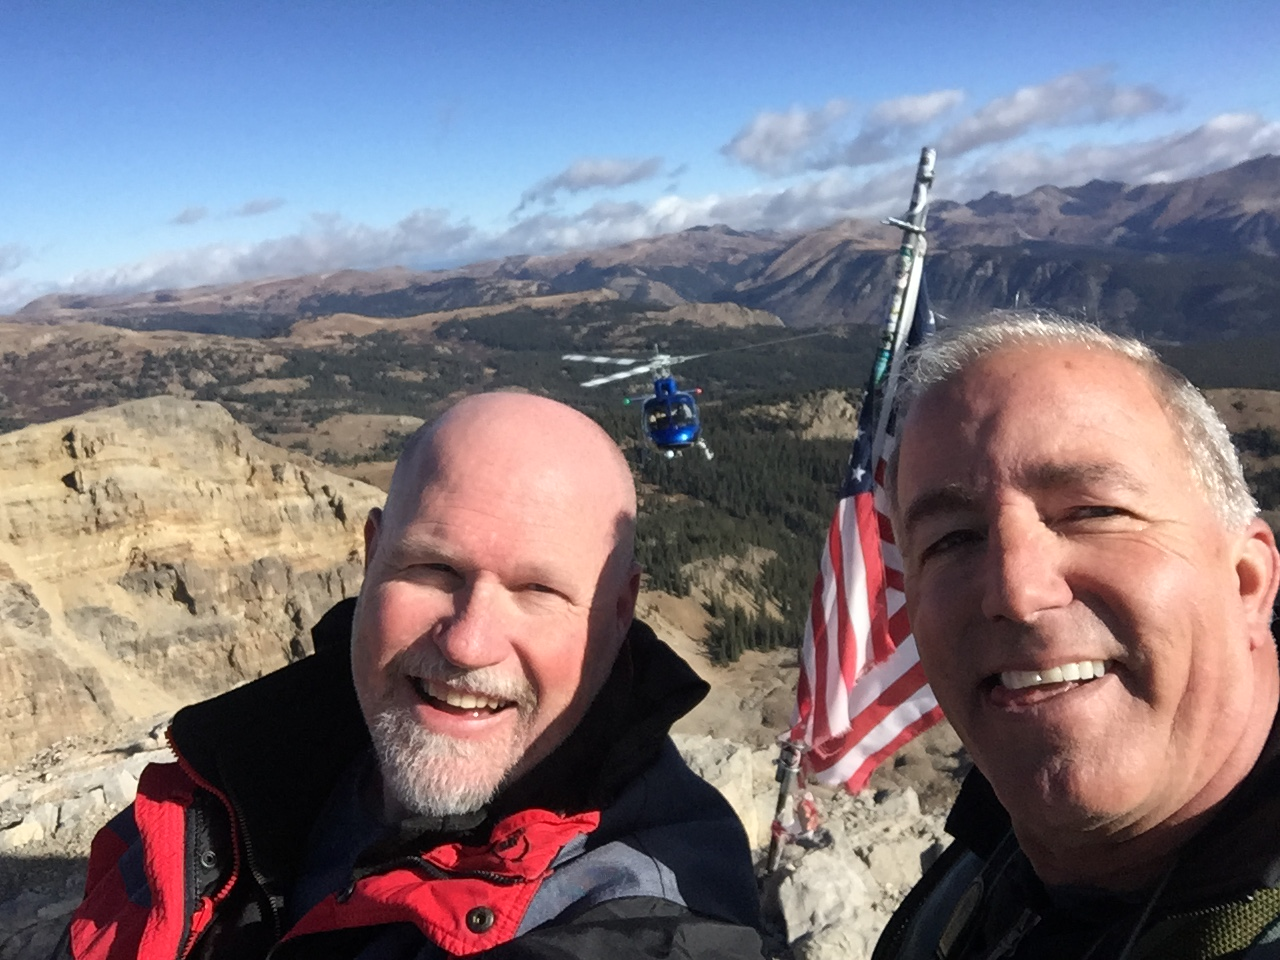 Shawn and Dan on-Location in the Rocky Mountains